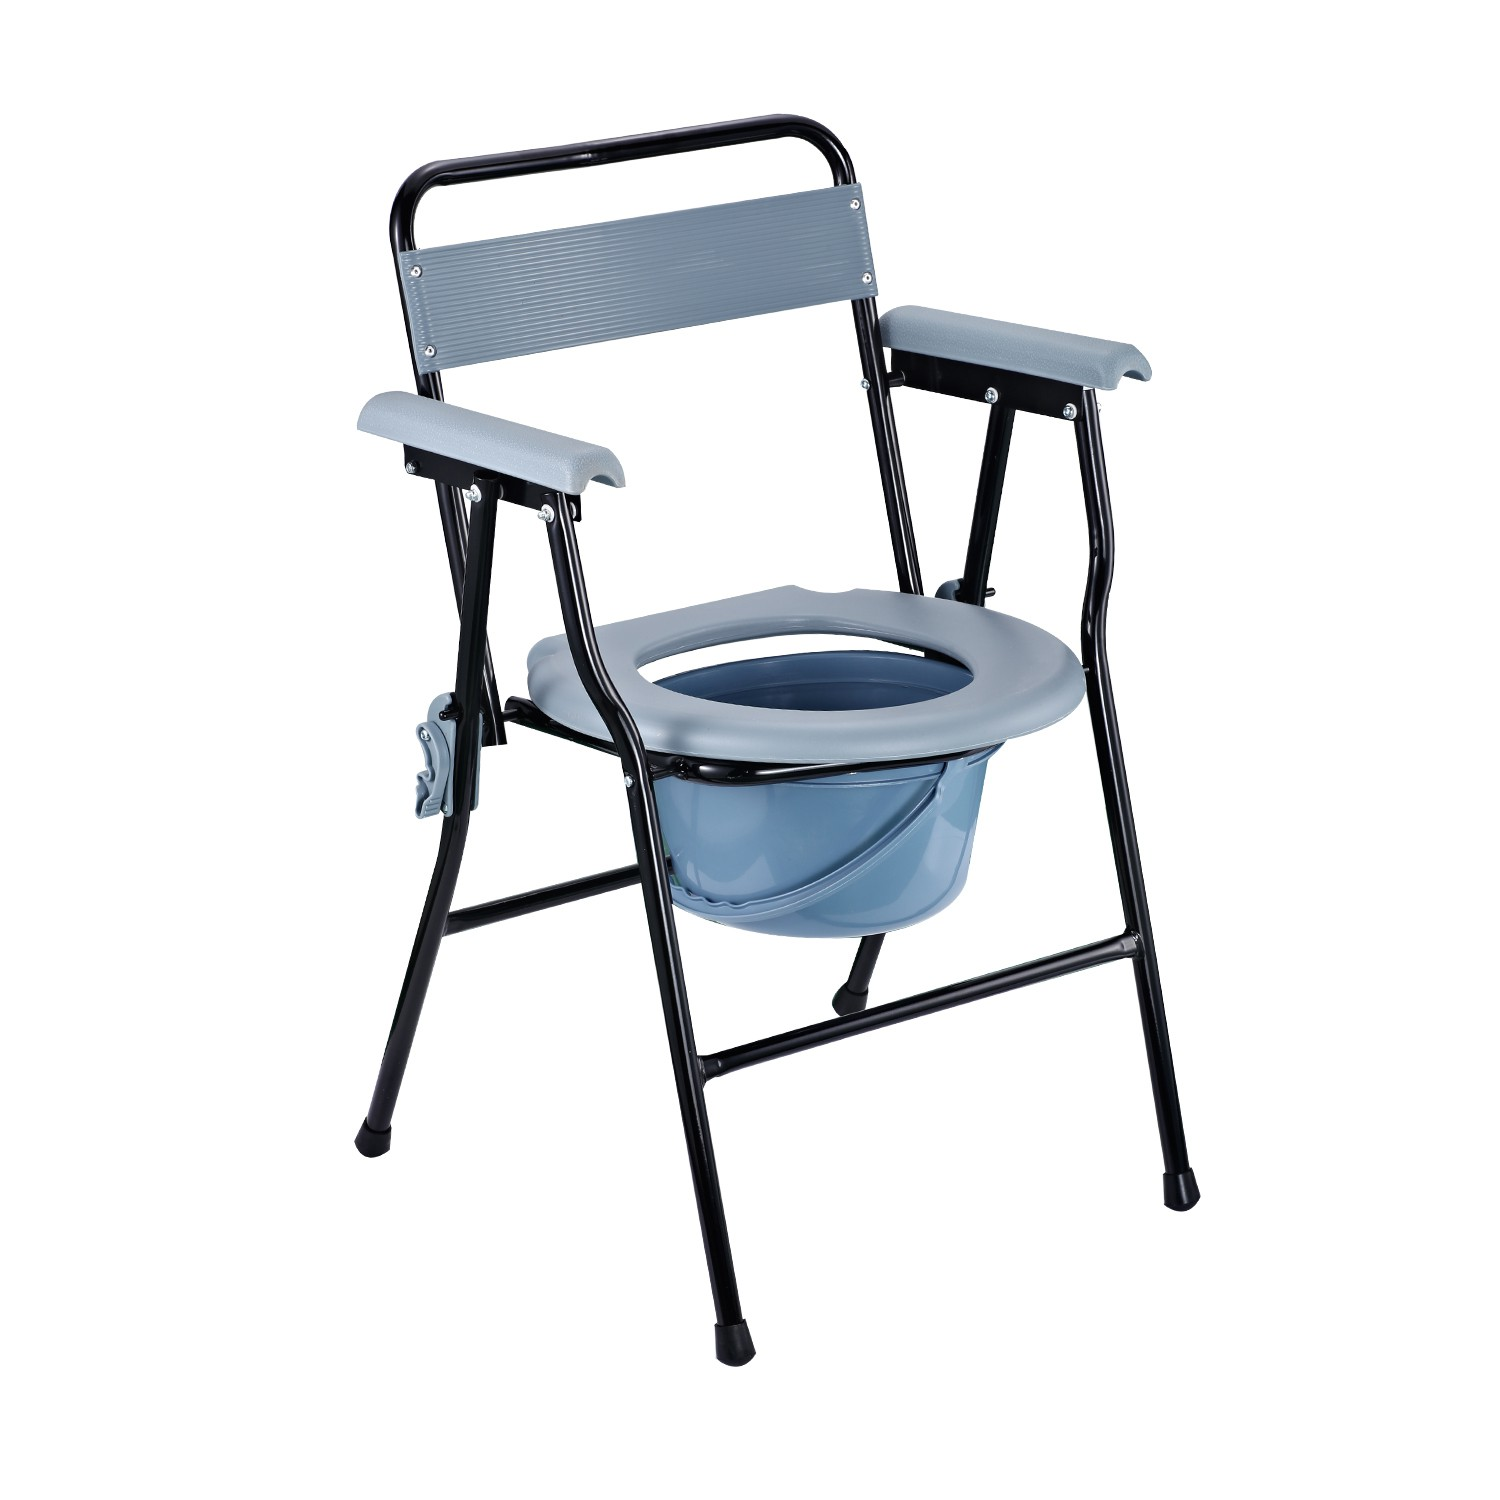 Foldable Commode Chair Available at Orthodynamic Ltd Nairobi Kenya Foldable Commode Chair